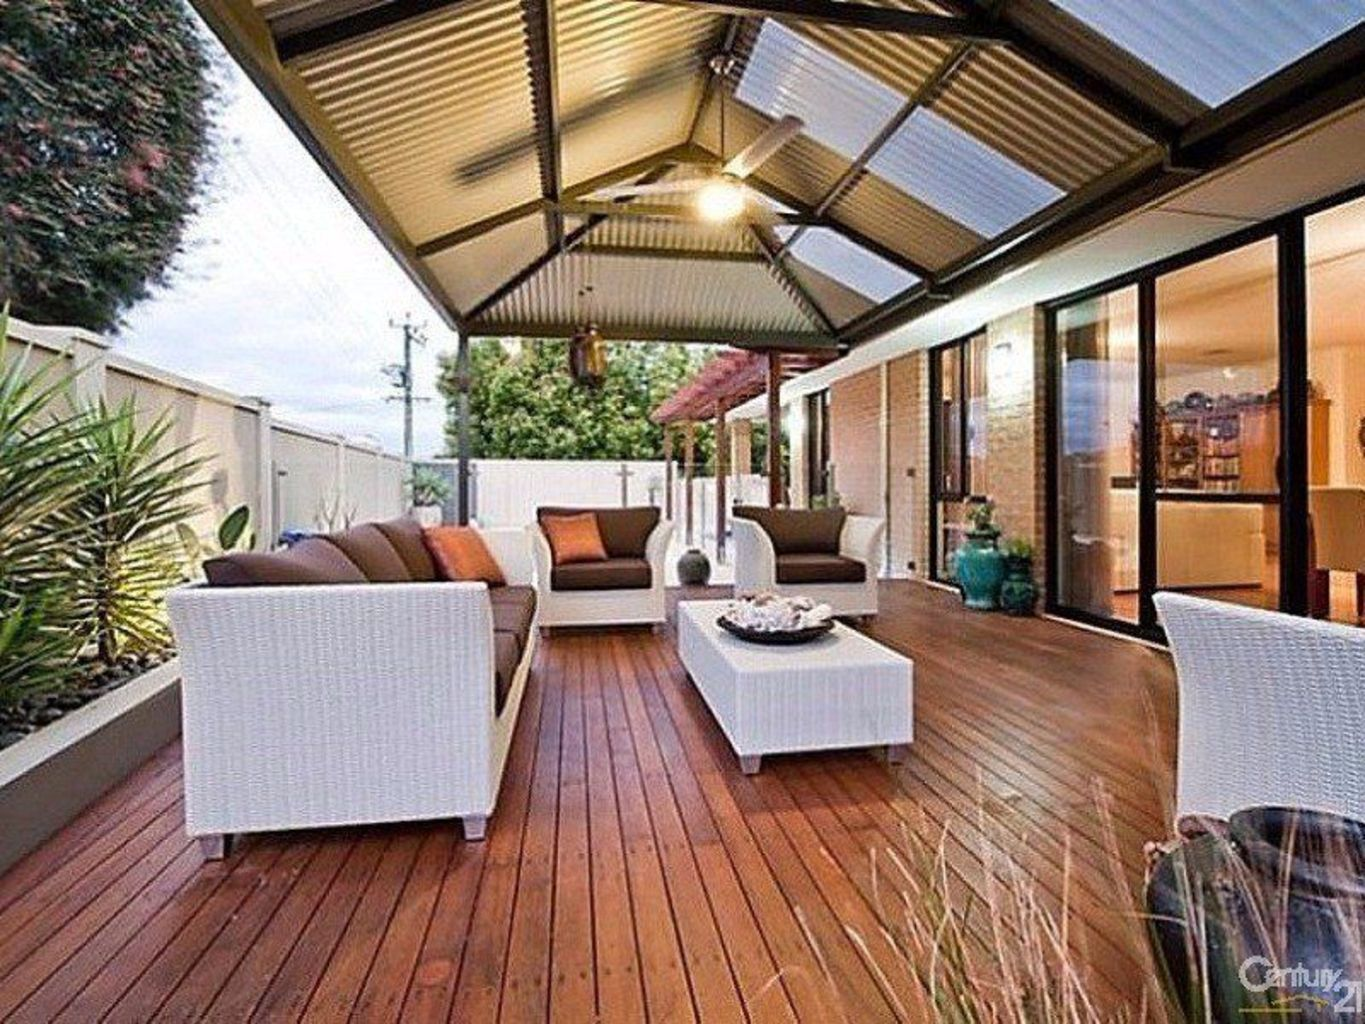 Back porch design ideas that perfect for every home as special space to make it anything you want Part (22)